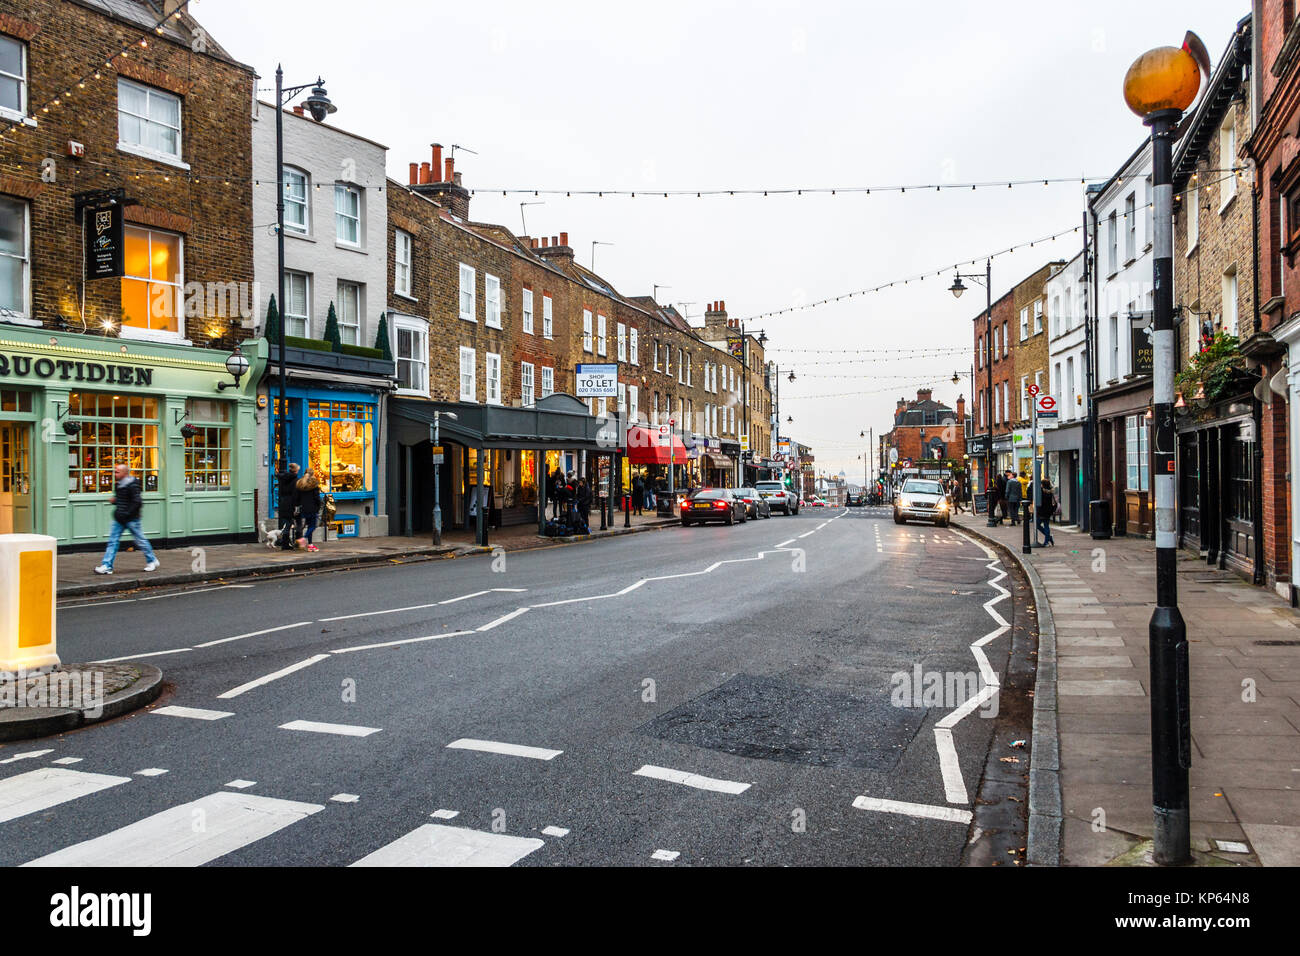 The high street in Highgate Village, London, UK, on a December evening Stock Photo